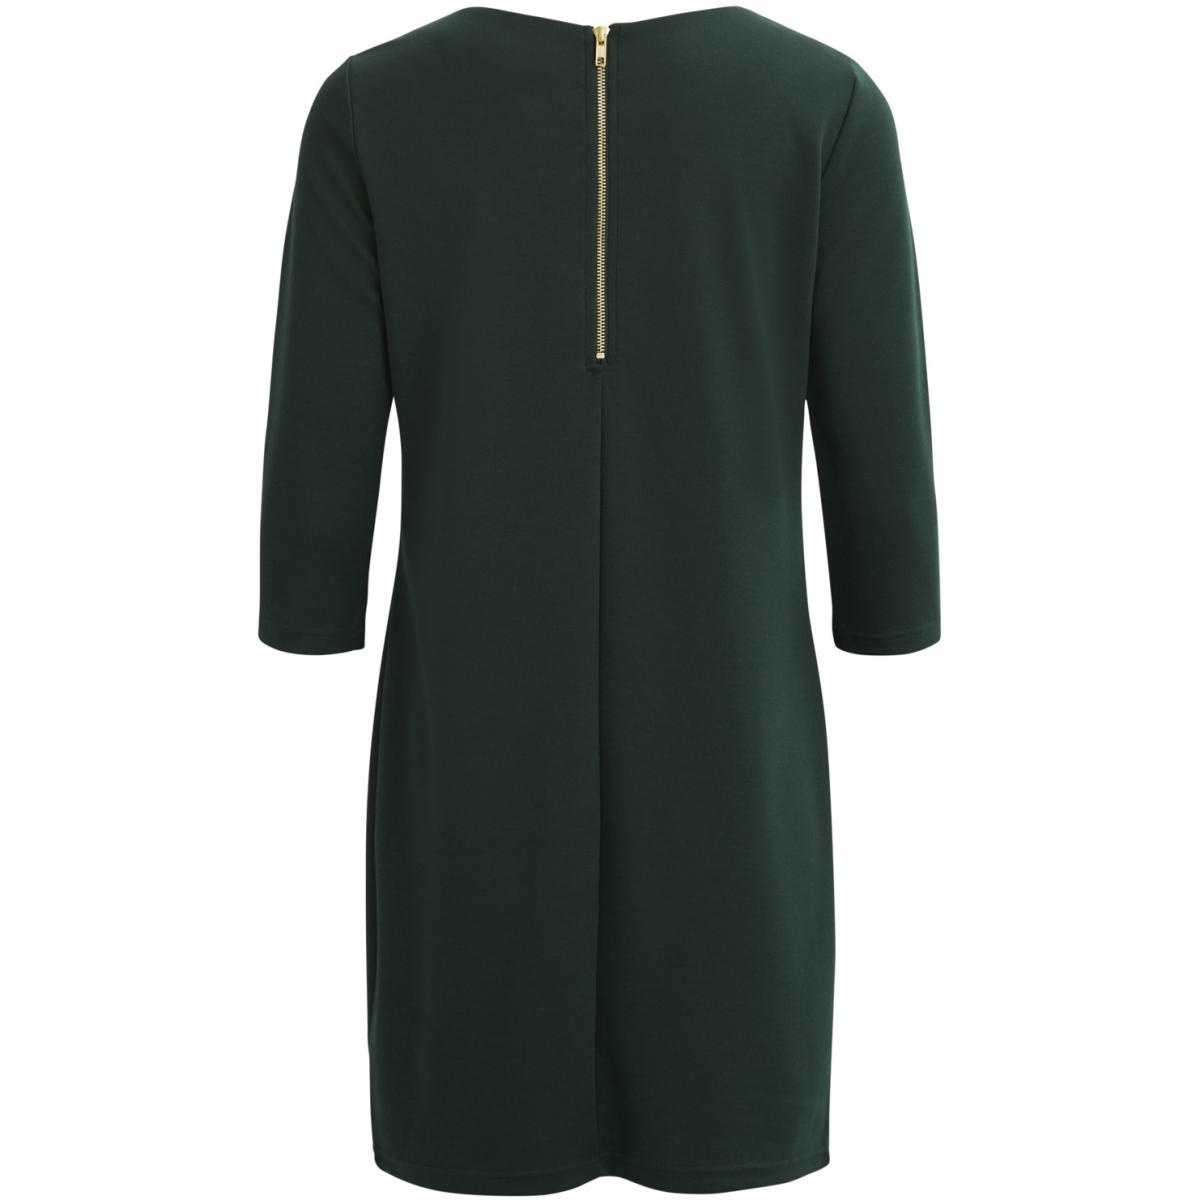 vitinny new dress-fav 14043495 vila jurk pine grove